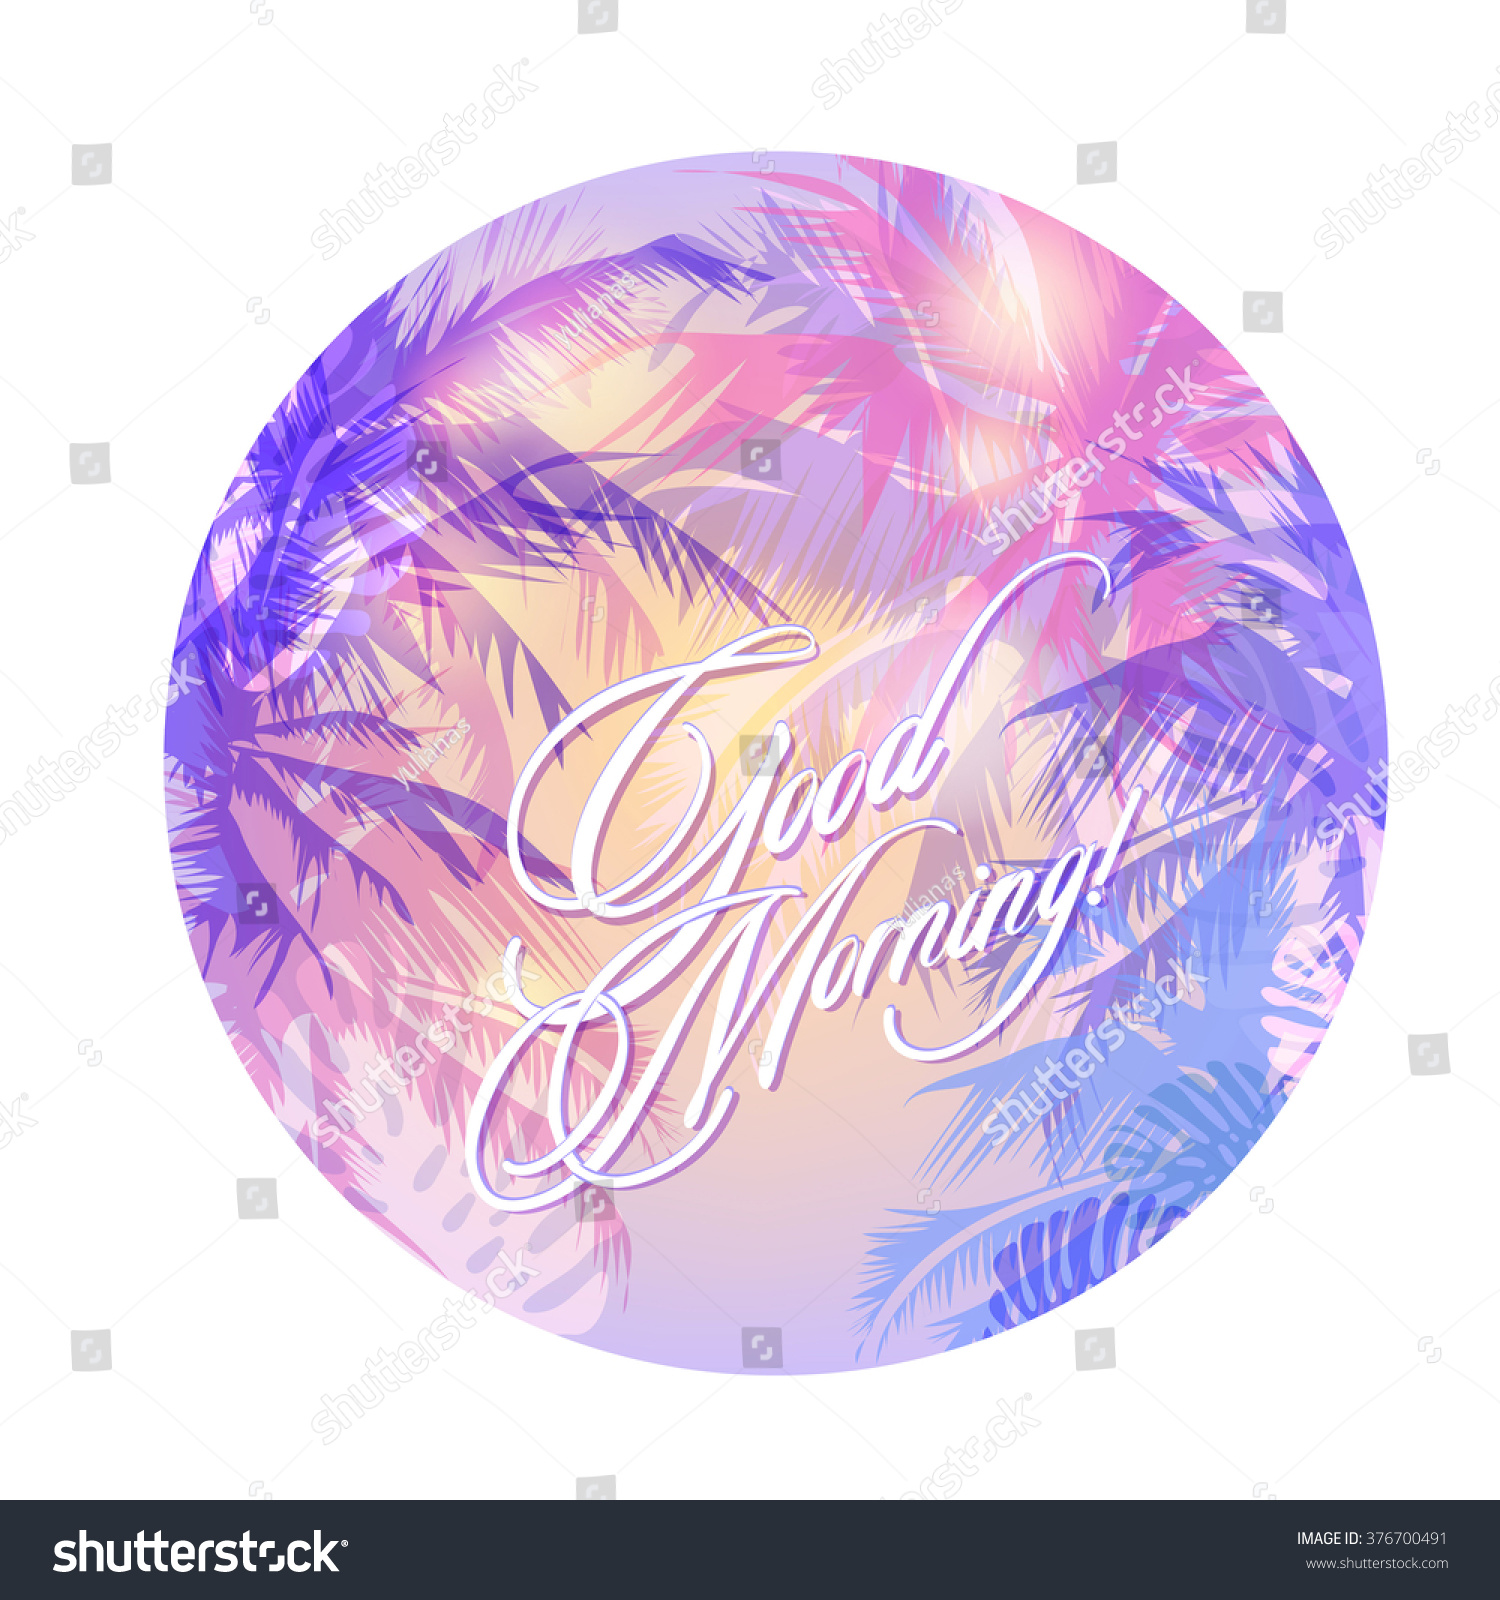 Good morning round tropical background palm stock vector 376700491 good morning round tropical background with palm trees in the gentle morning mist biocorpaavc Choice Image